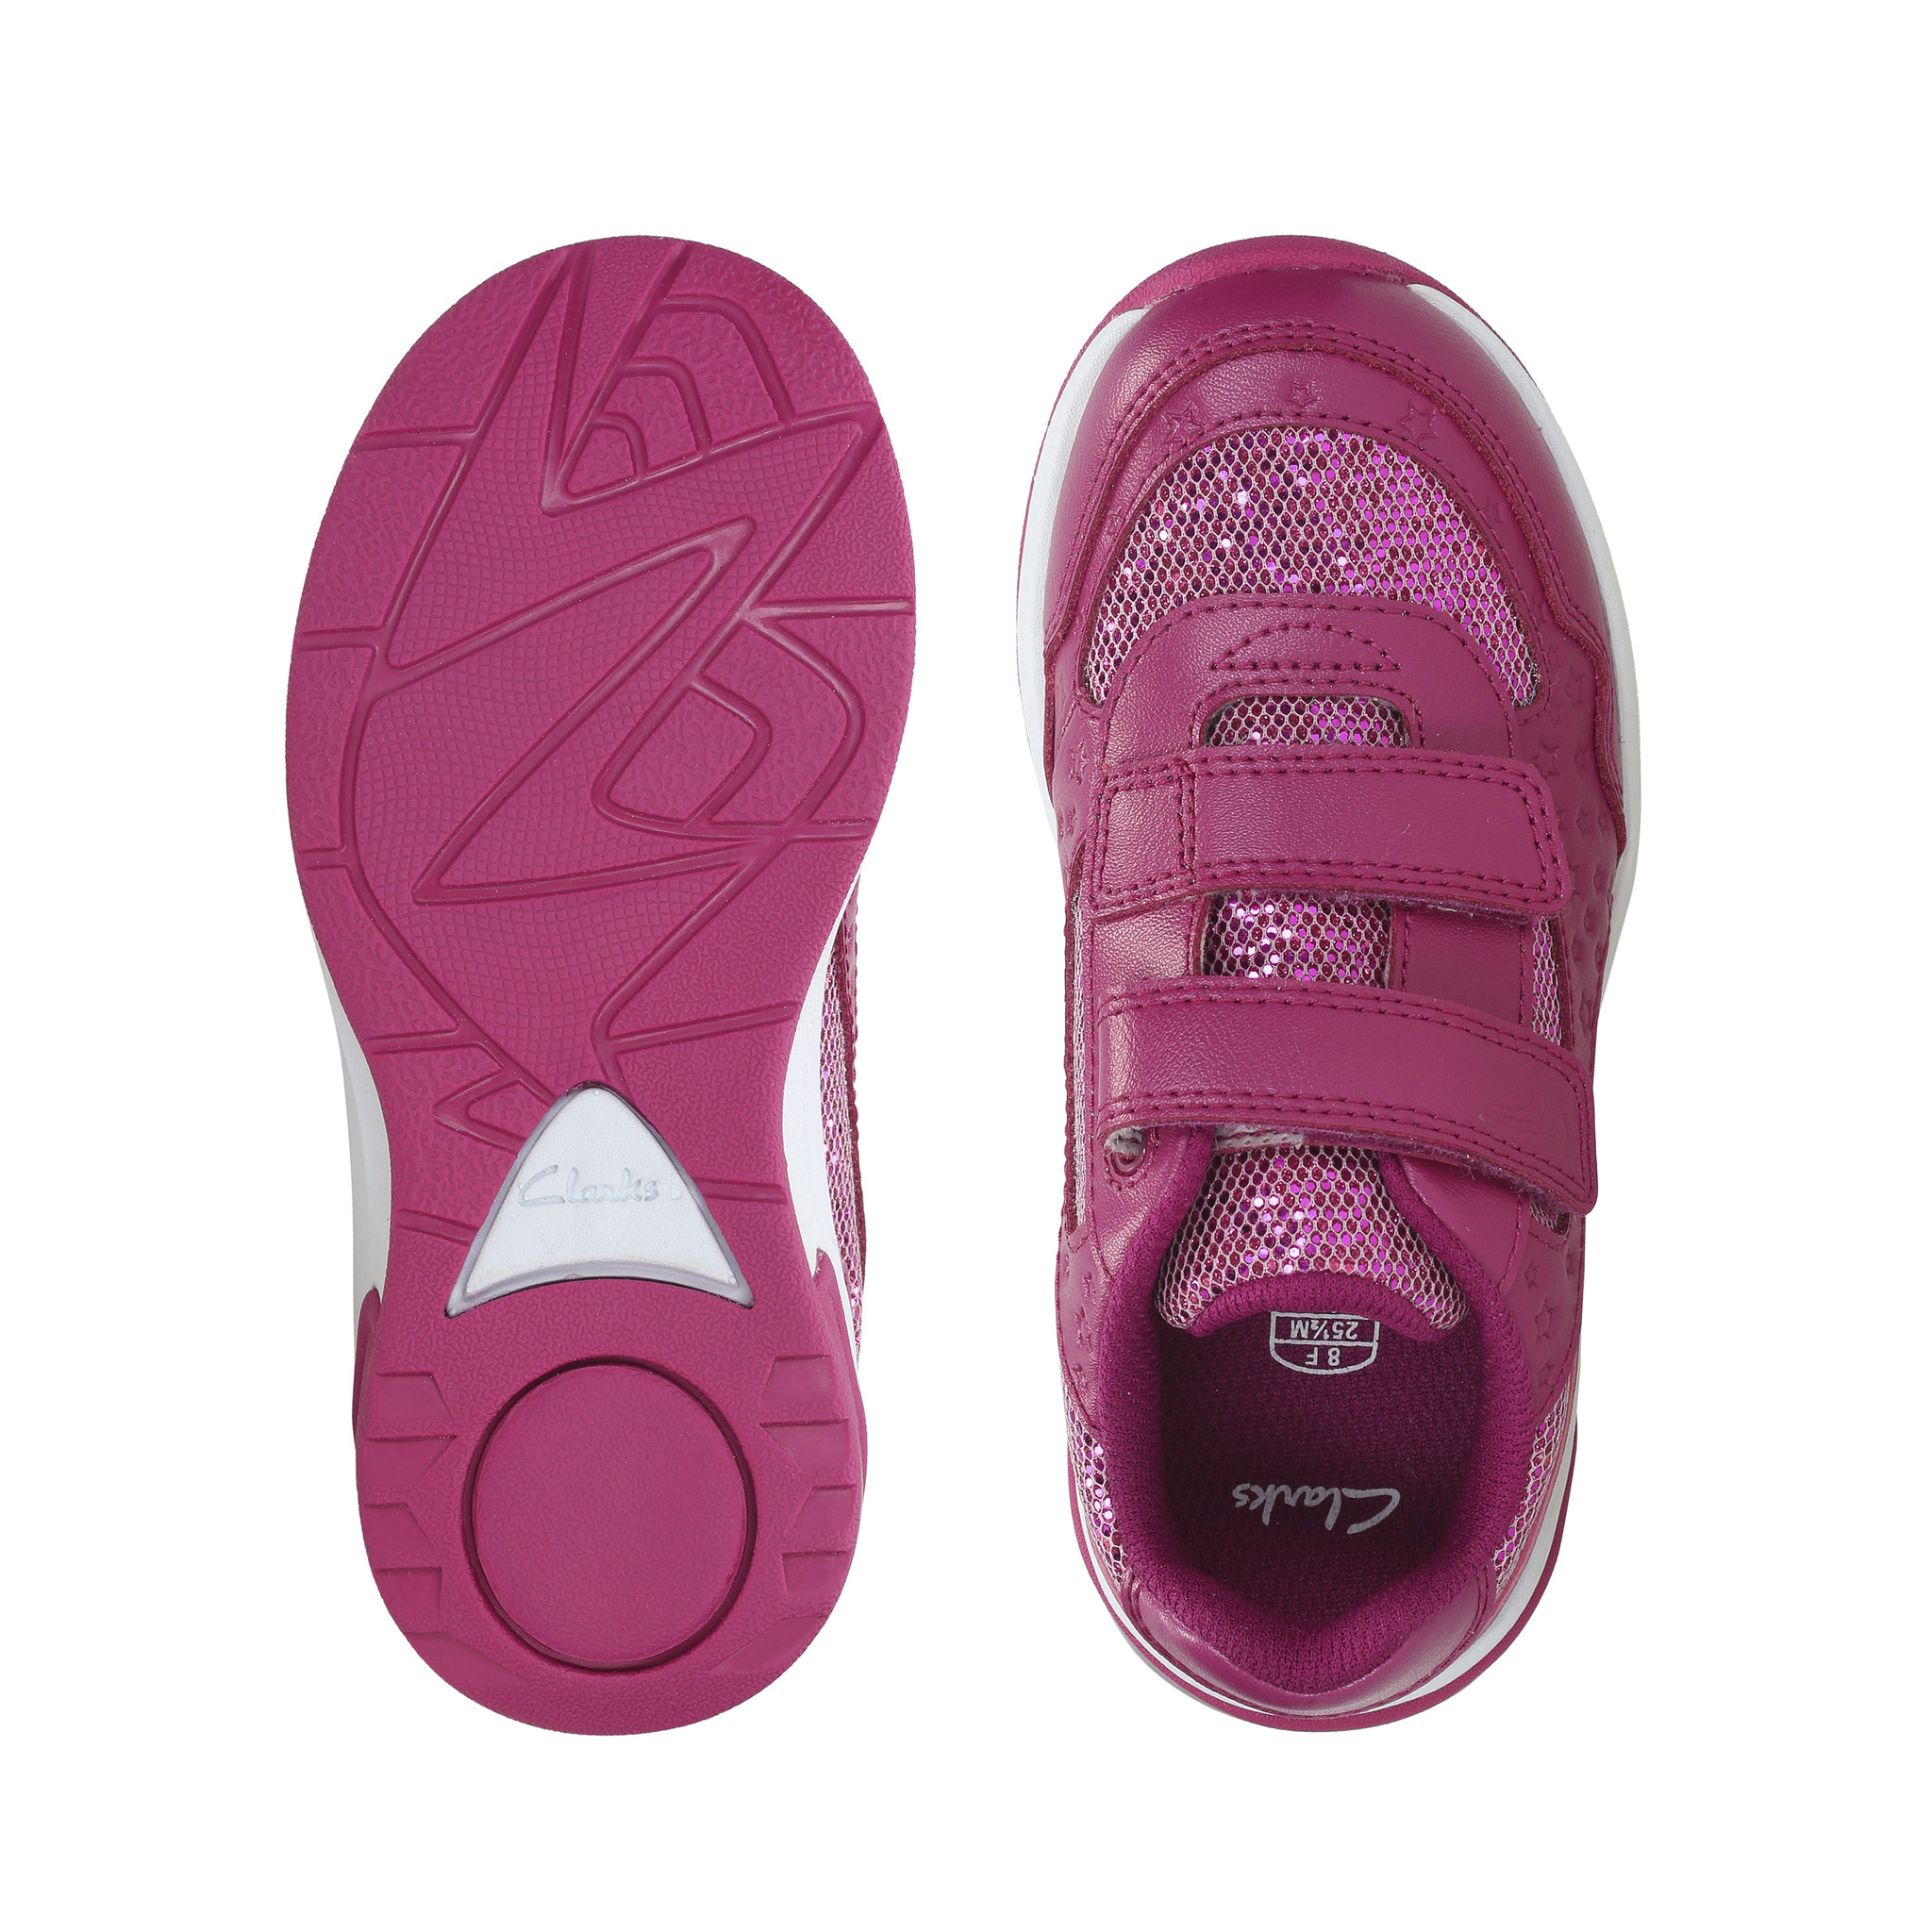 Clarks Piper Play Pink